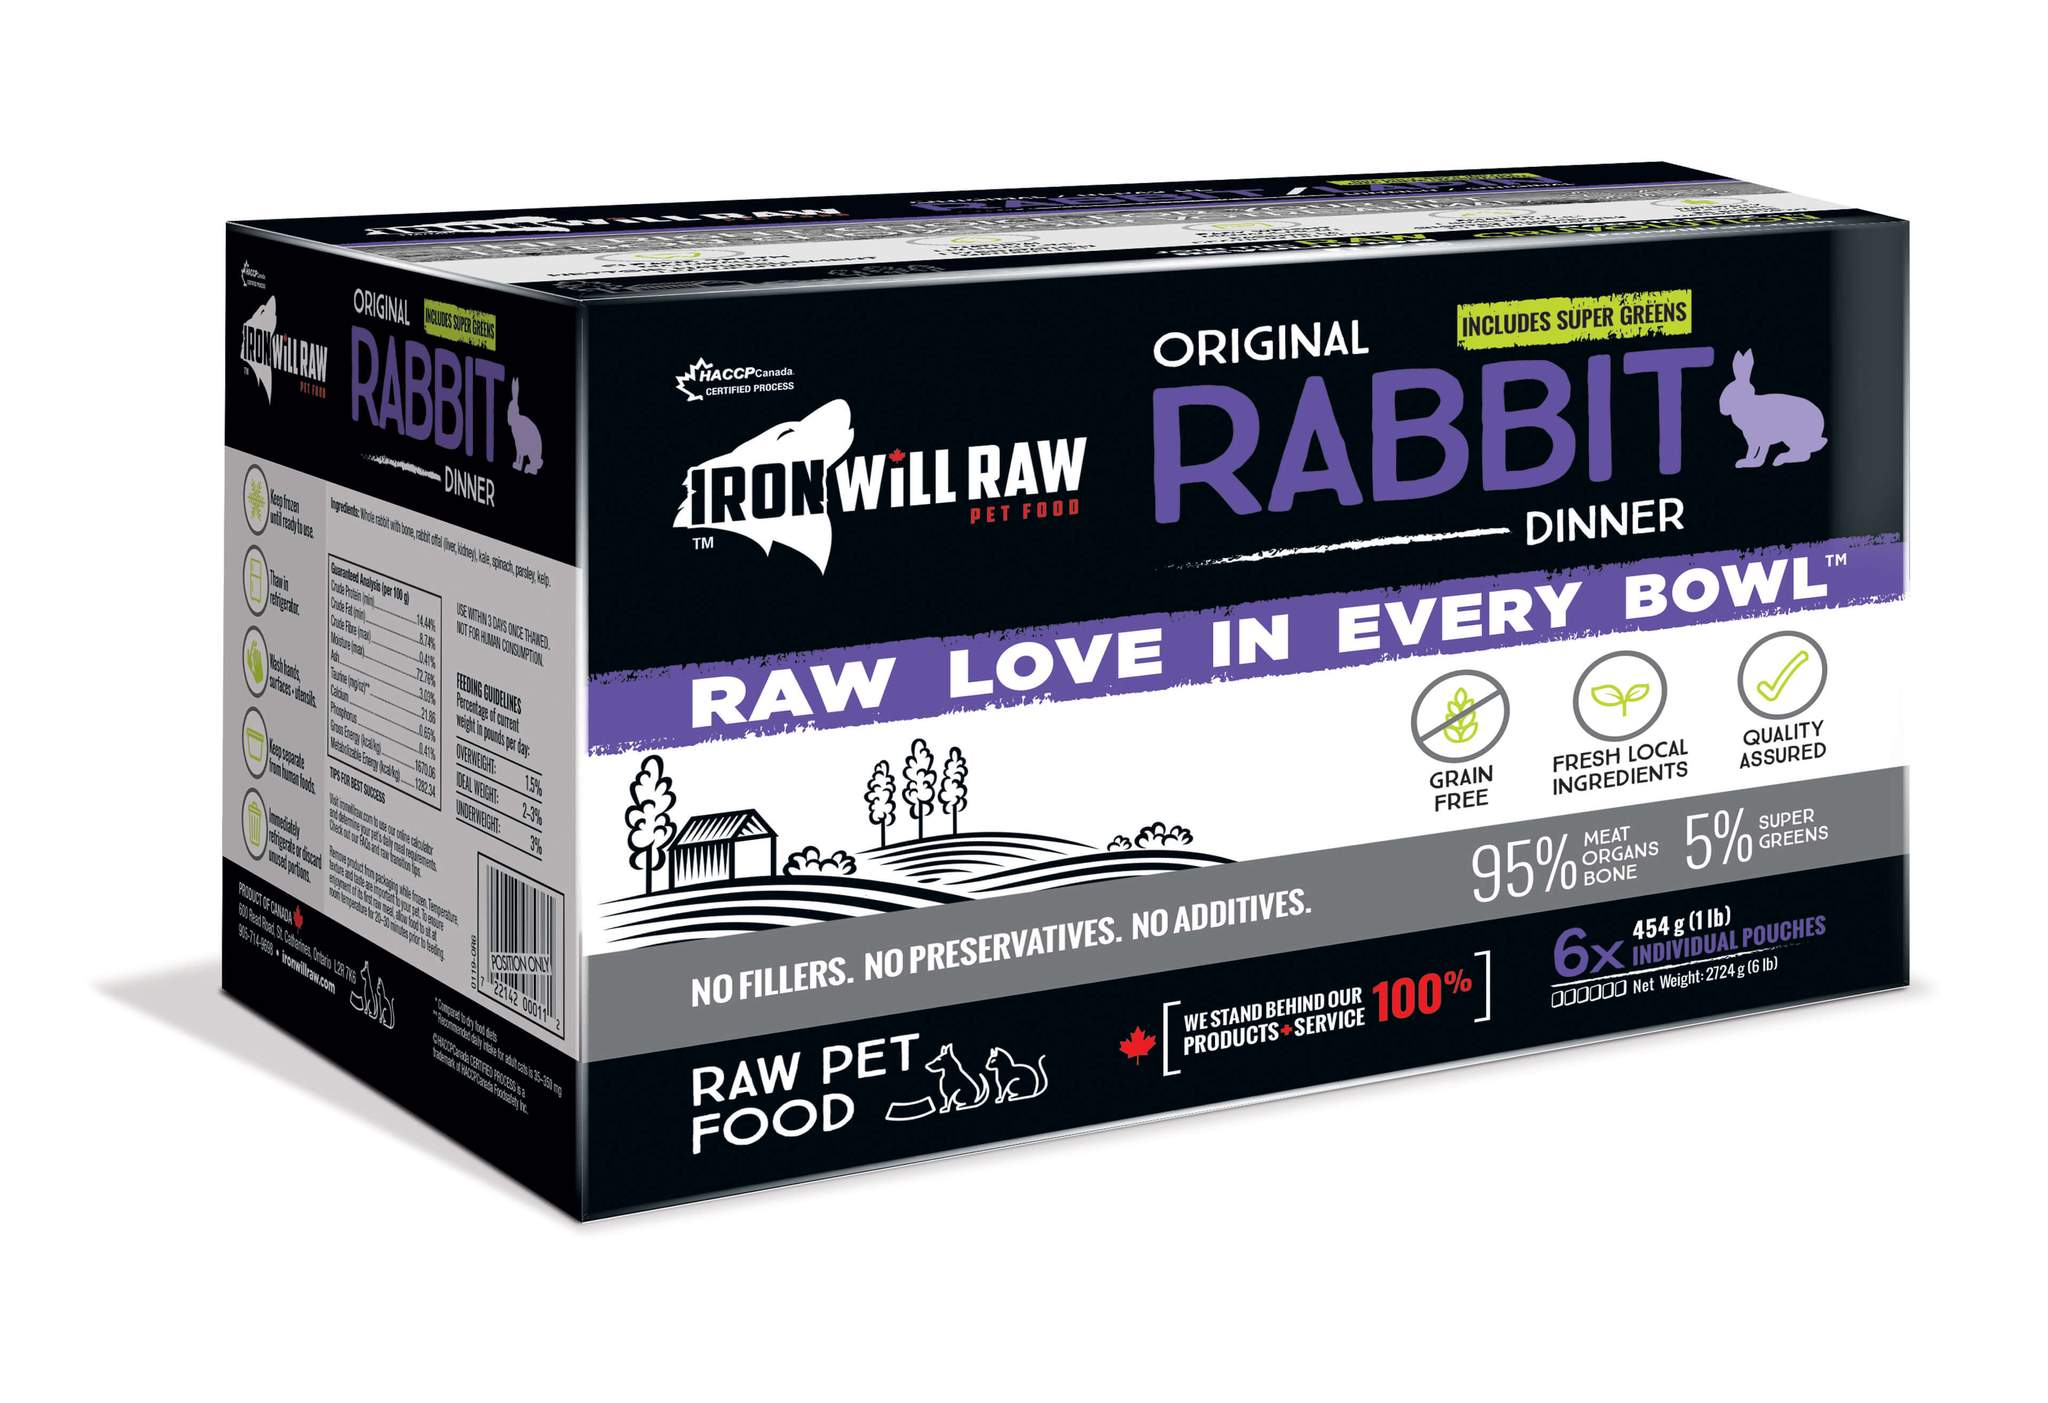 Iron Will Raw Original Rabbit Frozen Cat & Dog Food, 6-lb